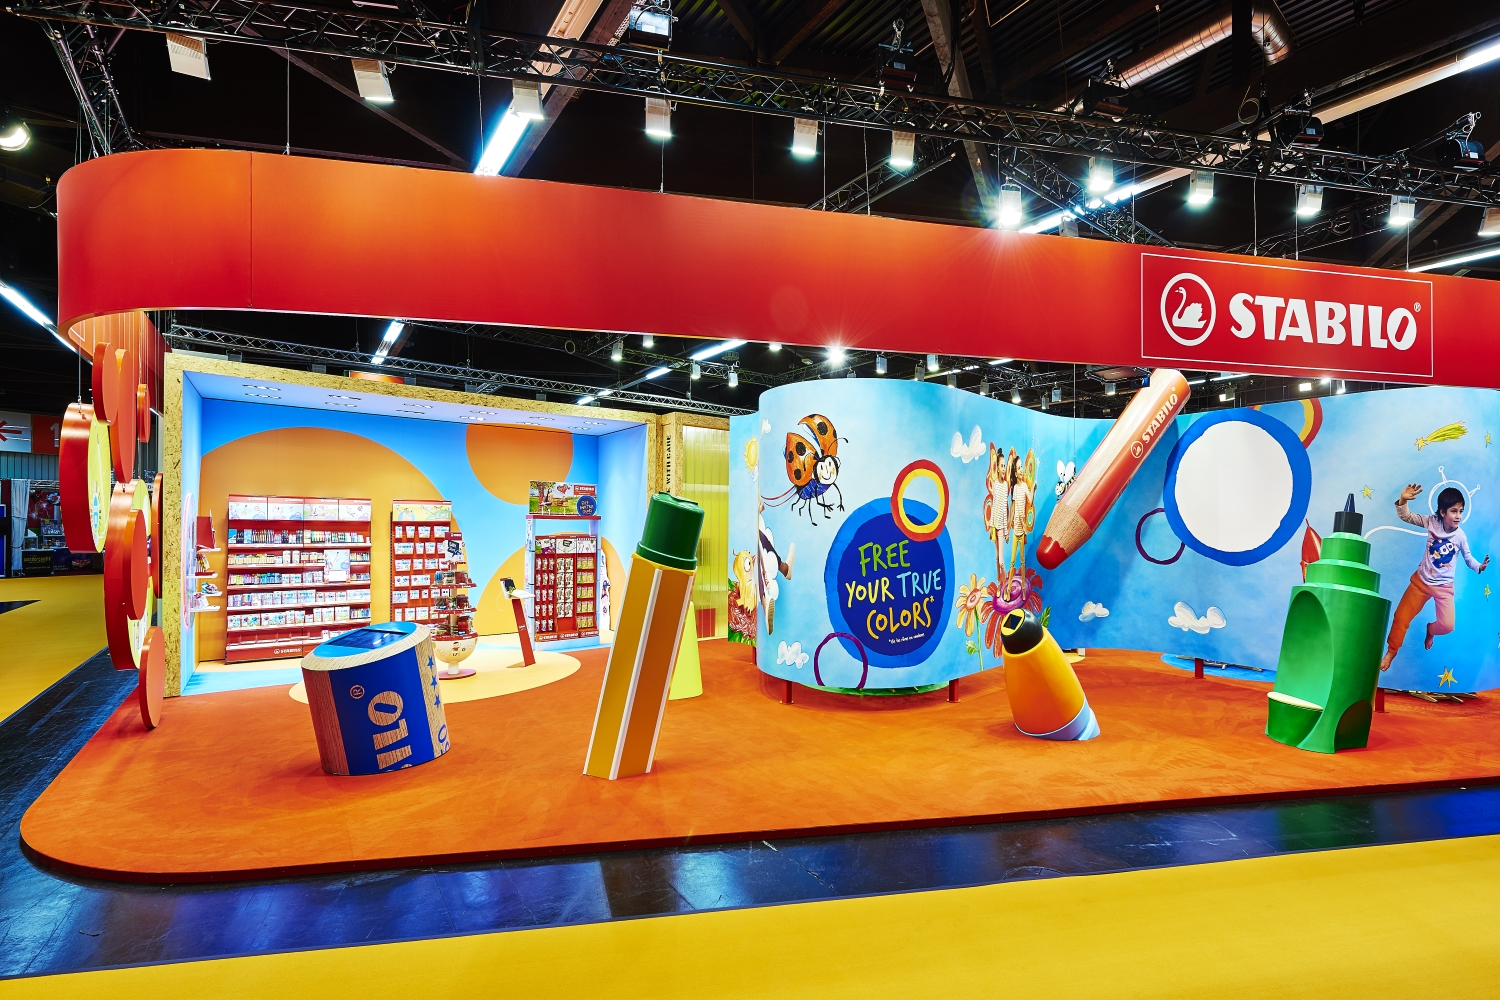 Stabilo Booth at toy fair Nuremberg